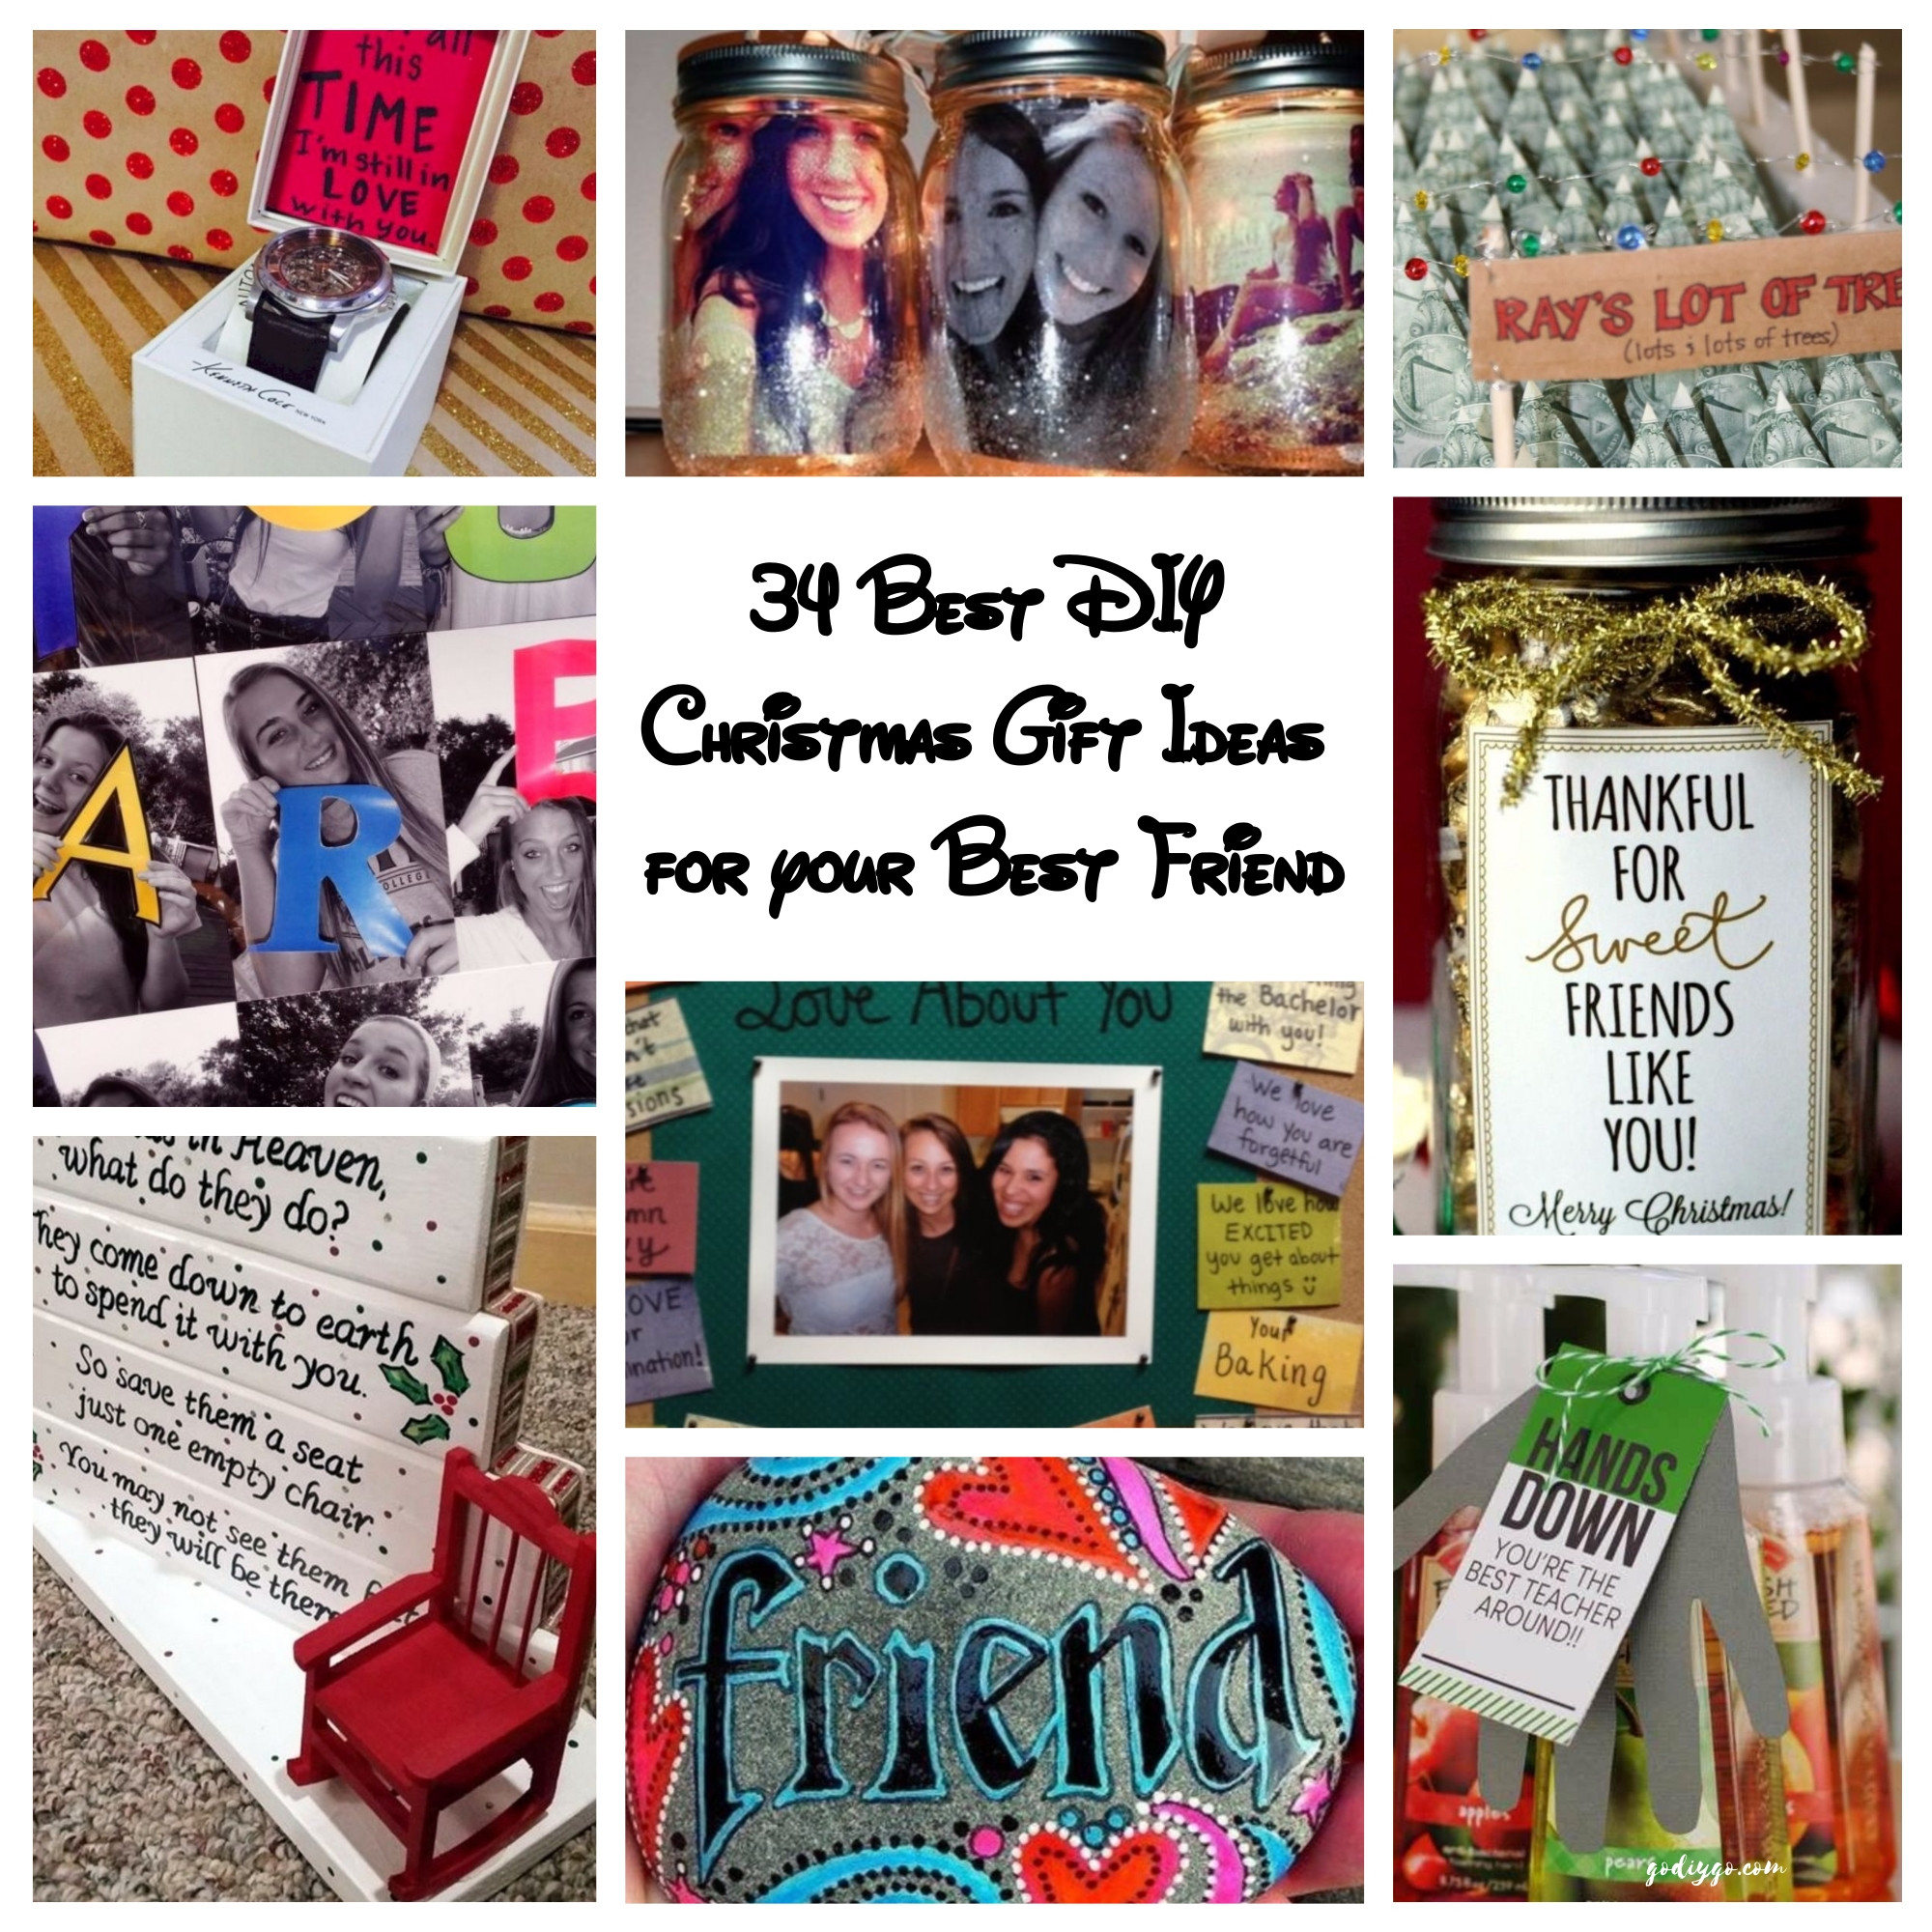 Best ideas about Christmas Gift Ideas For Your Best Friends . Save or Pin 34 Best DIY Christmas Gift Ideas for your Best Friend Now.